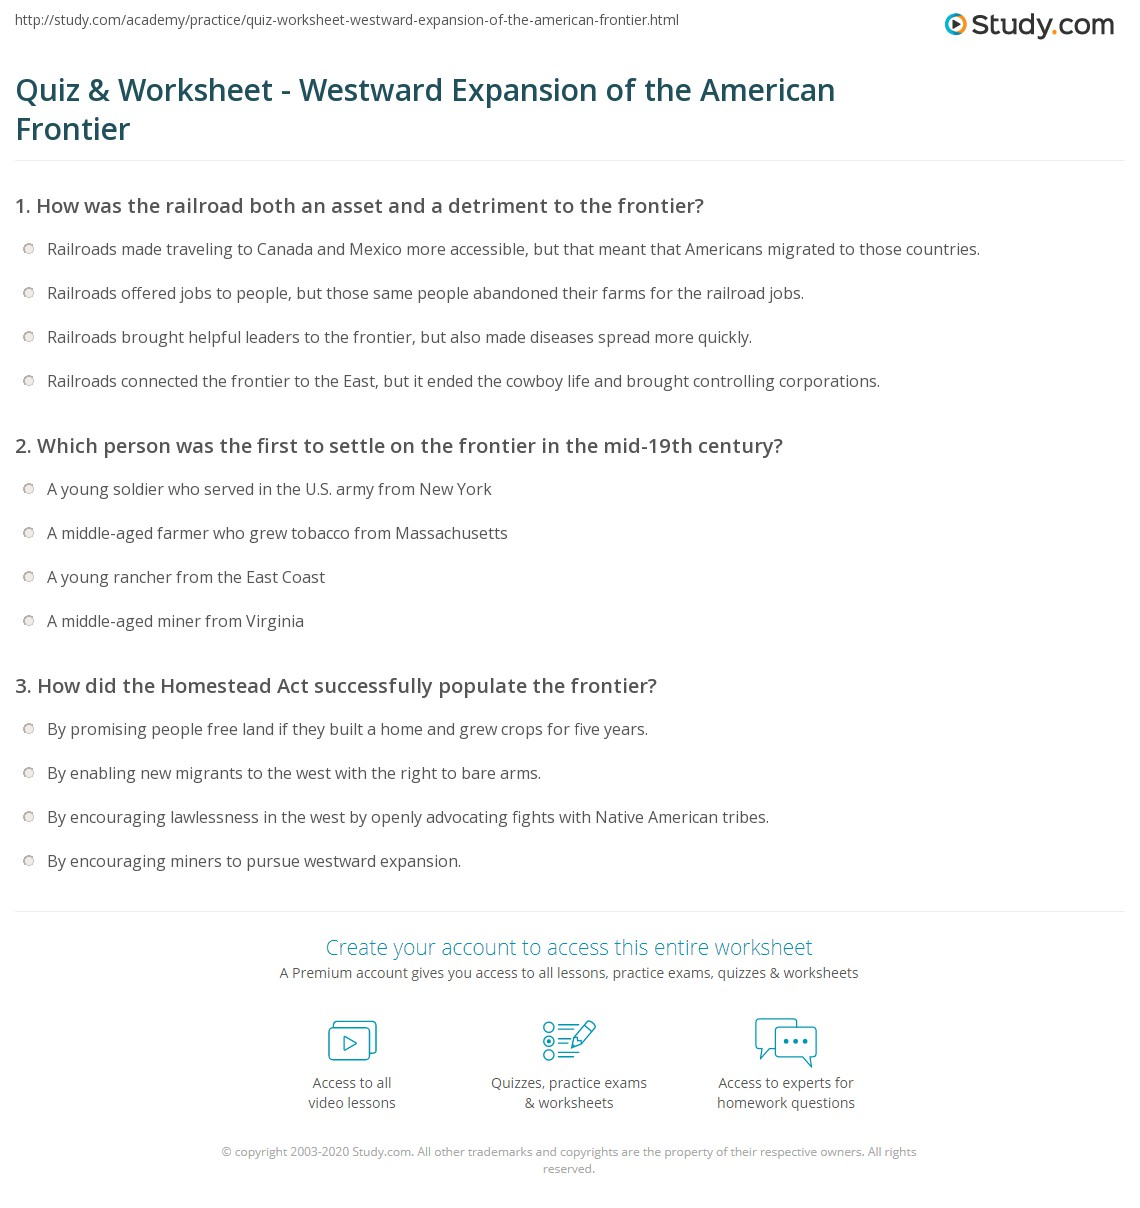 quiz worksheet westward expansion of the american frontier. Black Bedroom Furniture Sets. Home Design Ideas